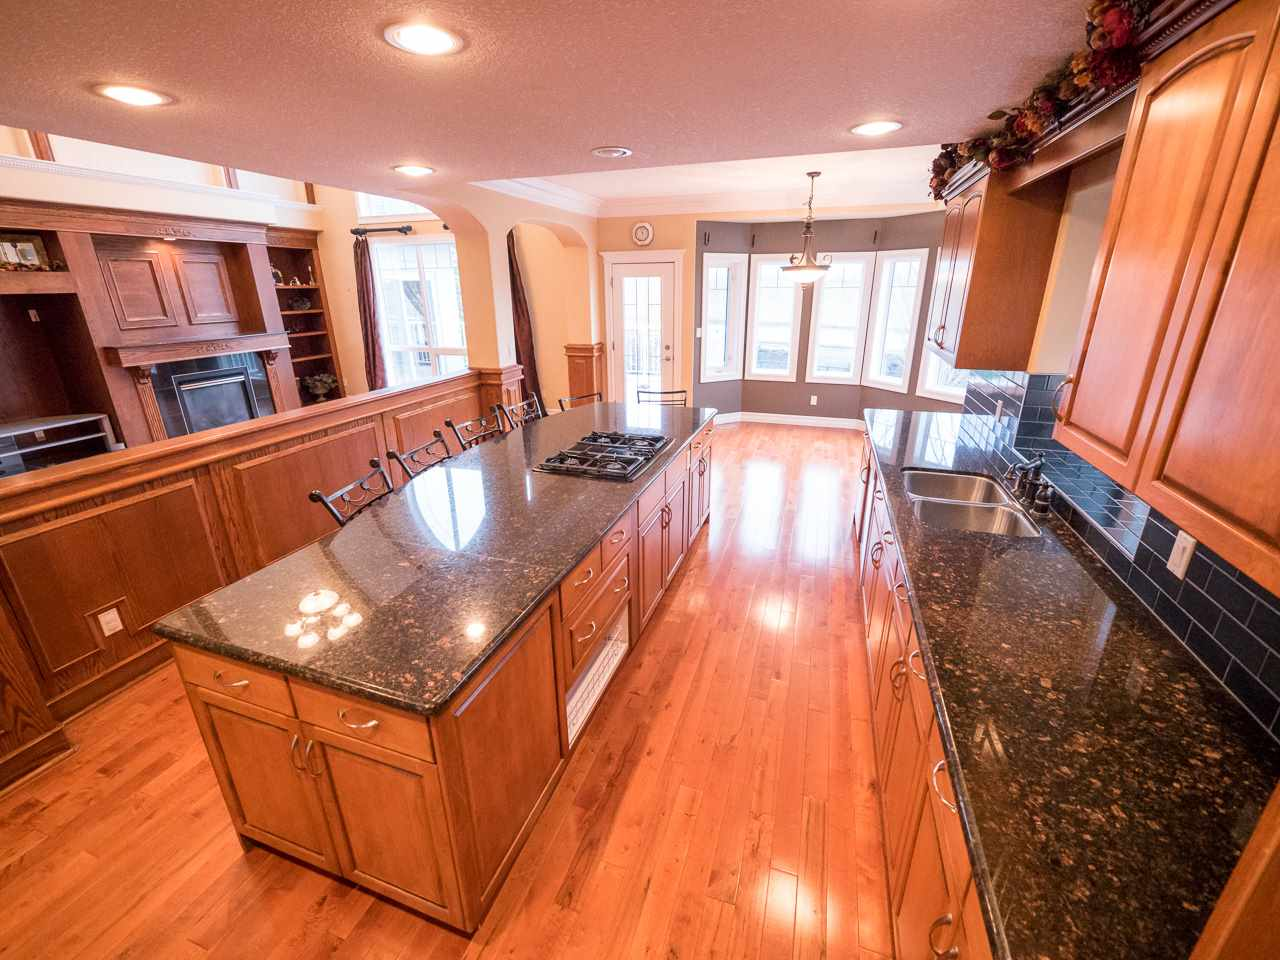 Chef's dream kitchen with maple cabinetry, granite countertops, stainless steel appliances & large center island is suitable for cooking and entertaining at the same time.